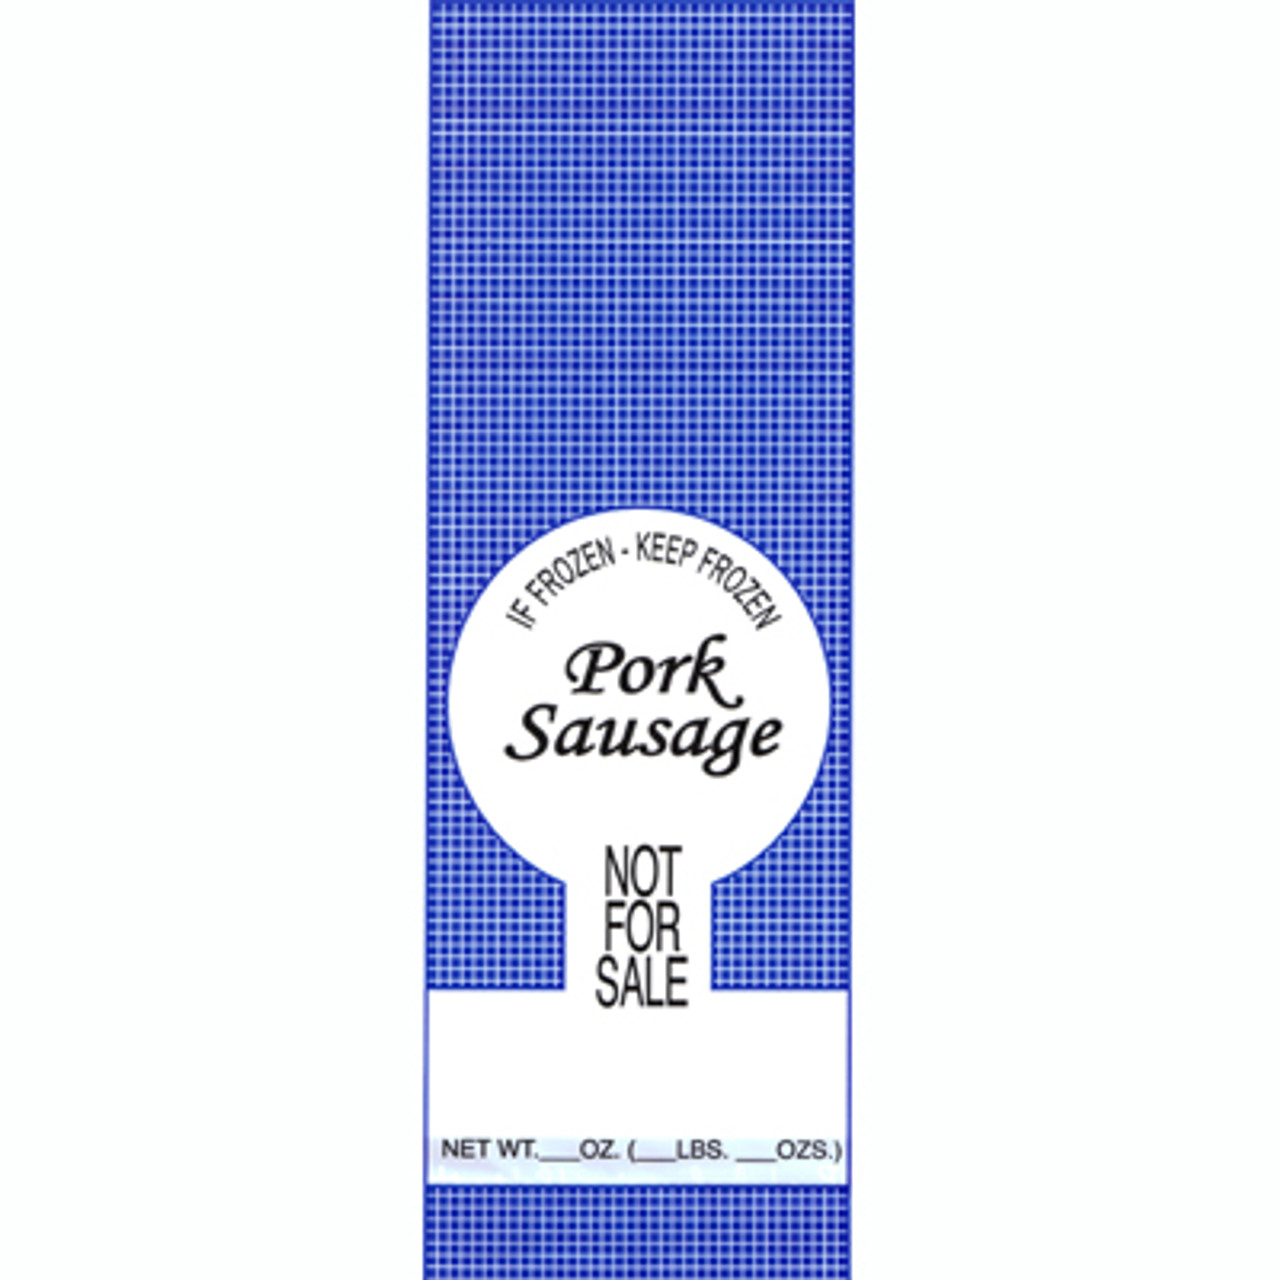 "1lb. Pork Sausage Meat Bags 1000ea. - Pork Sausage ""Not For Sale"""